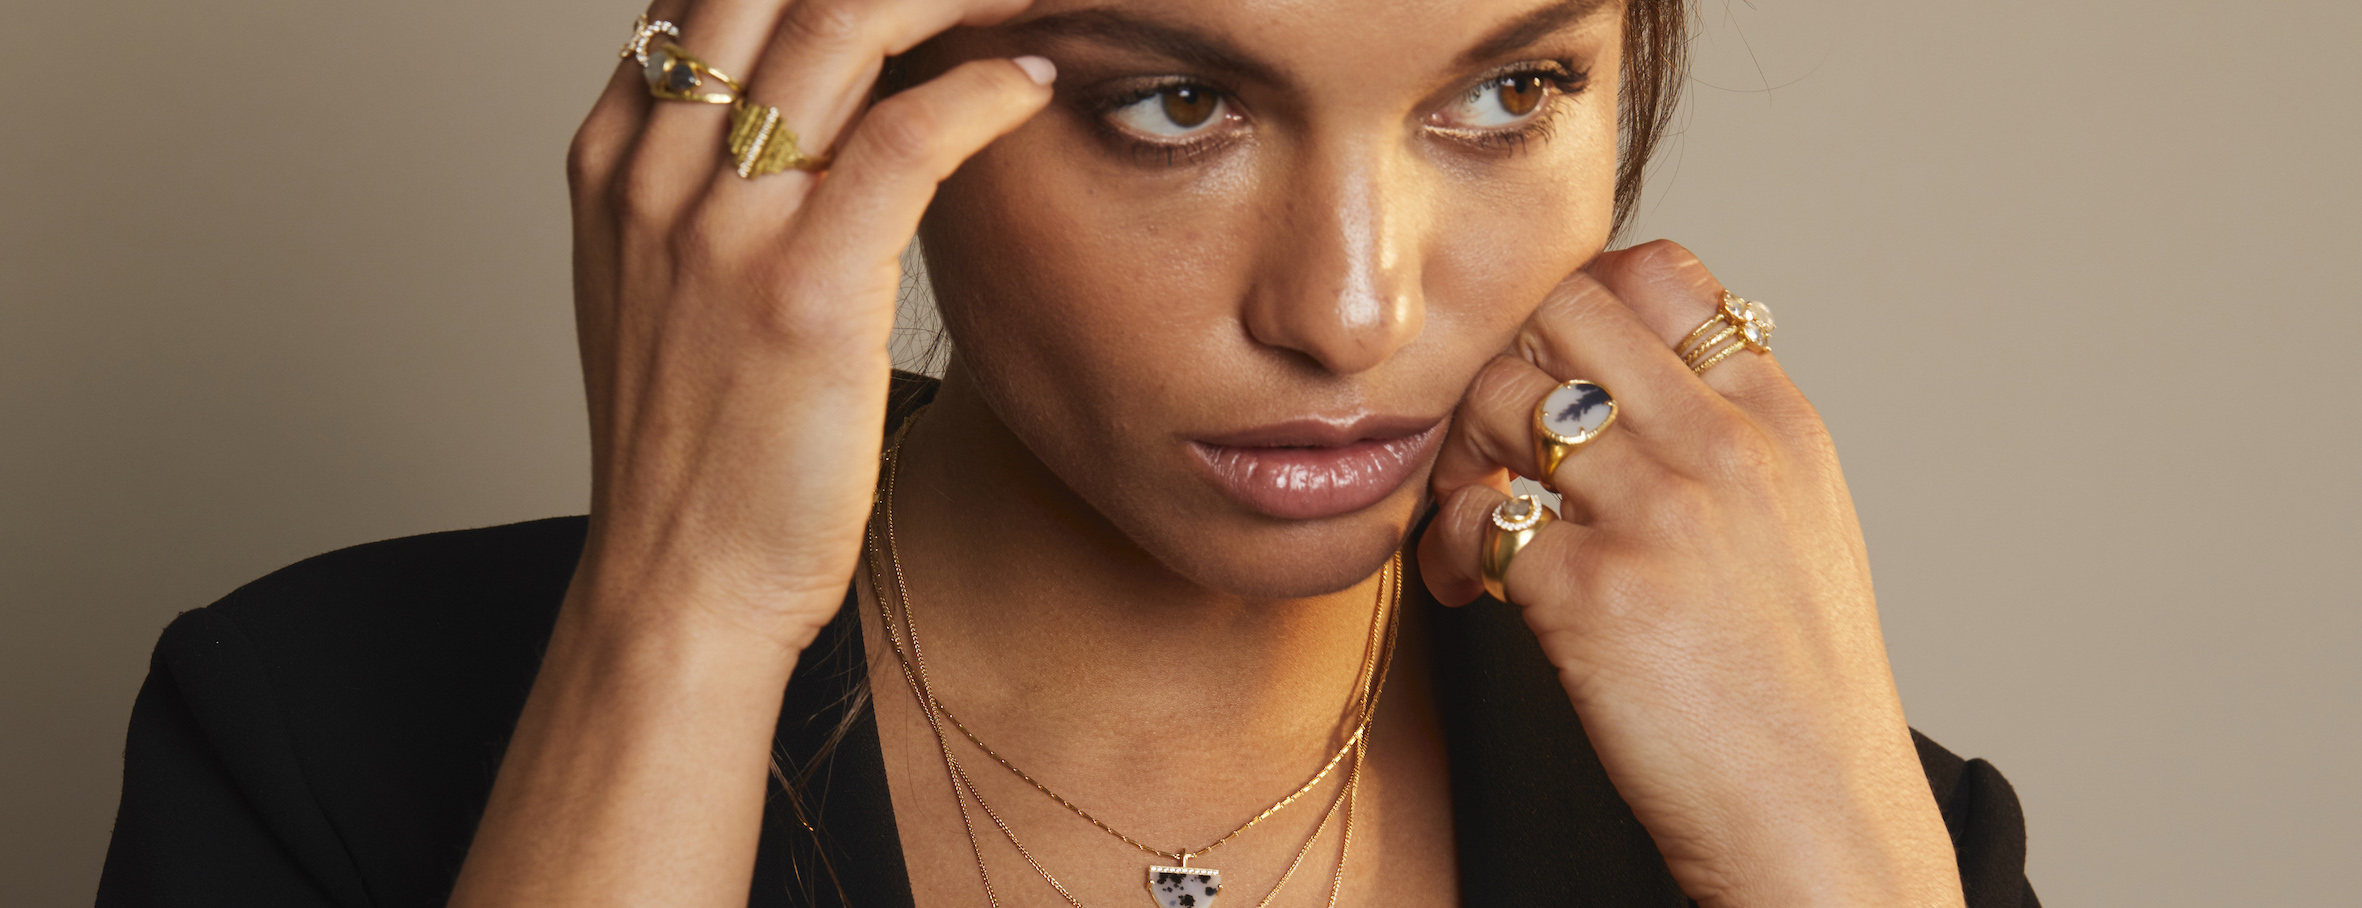 Sorrel Bay ethicaly made gold and gemstone Linea jewelery collection